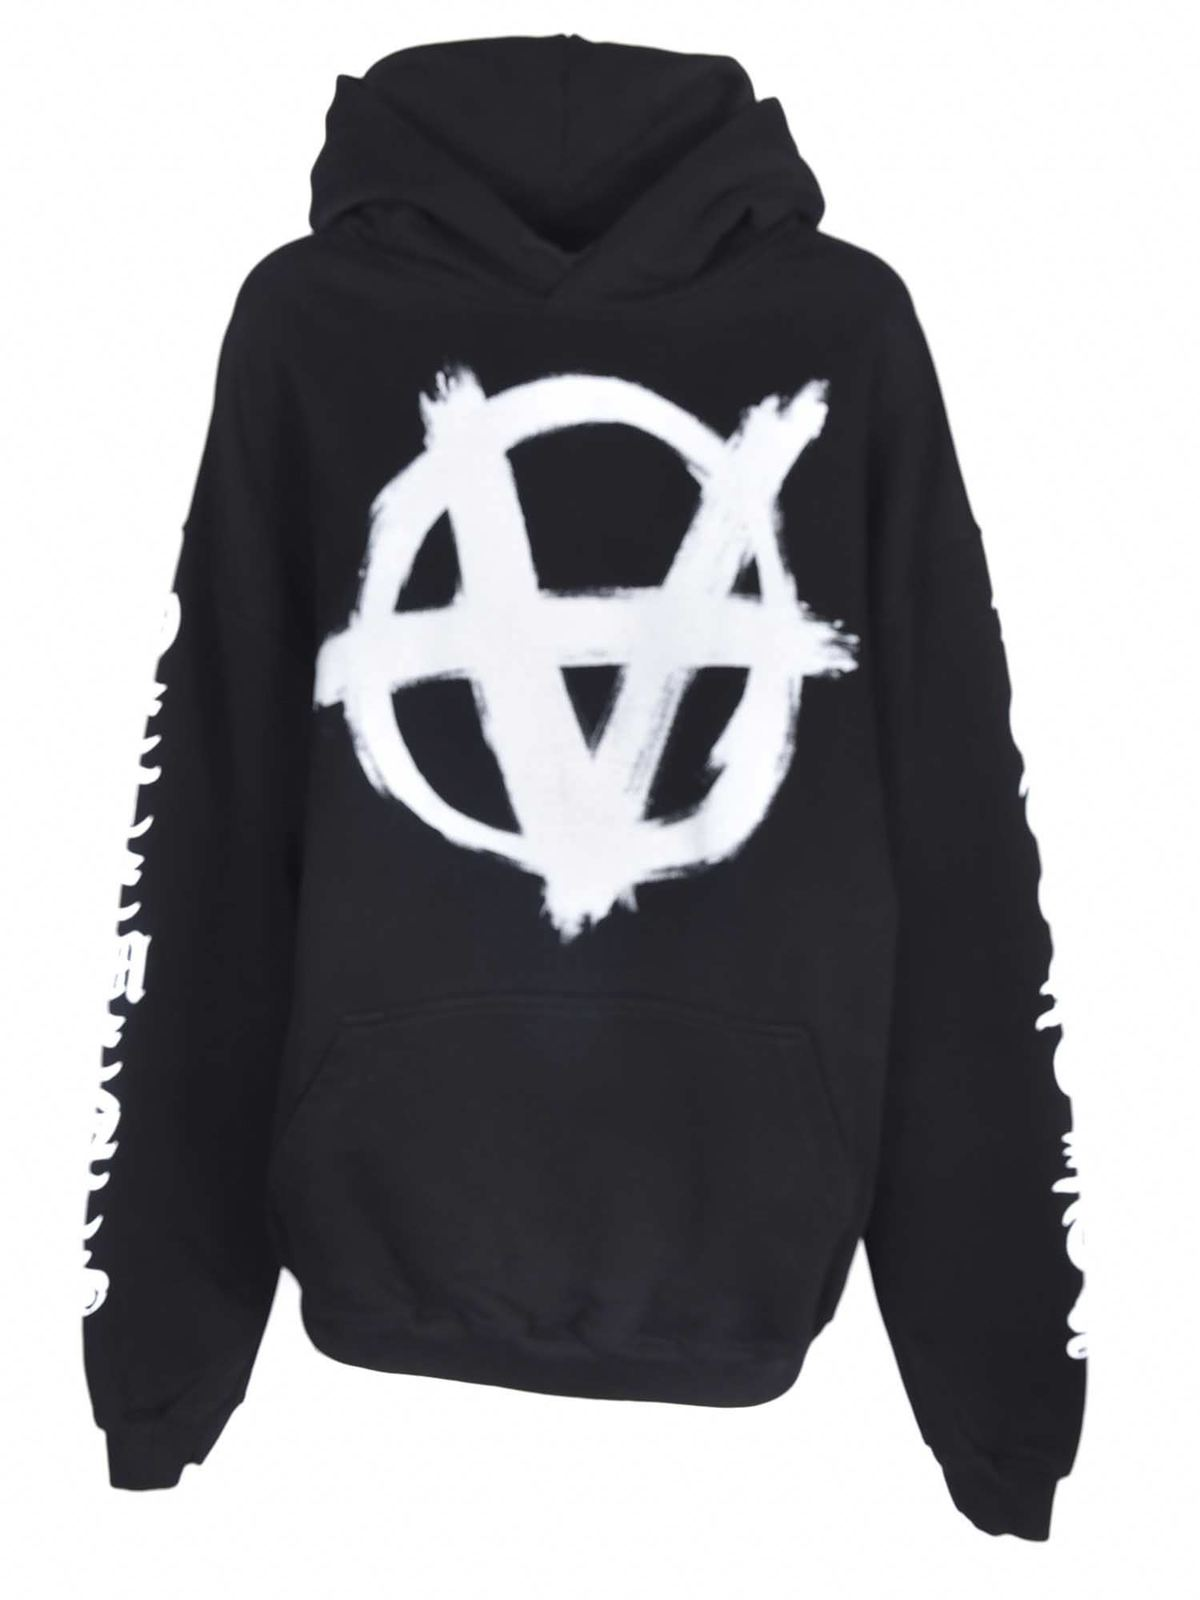 Vetements ANARCHY SWEATSHIRT IN BLACK